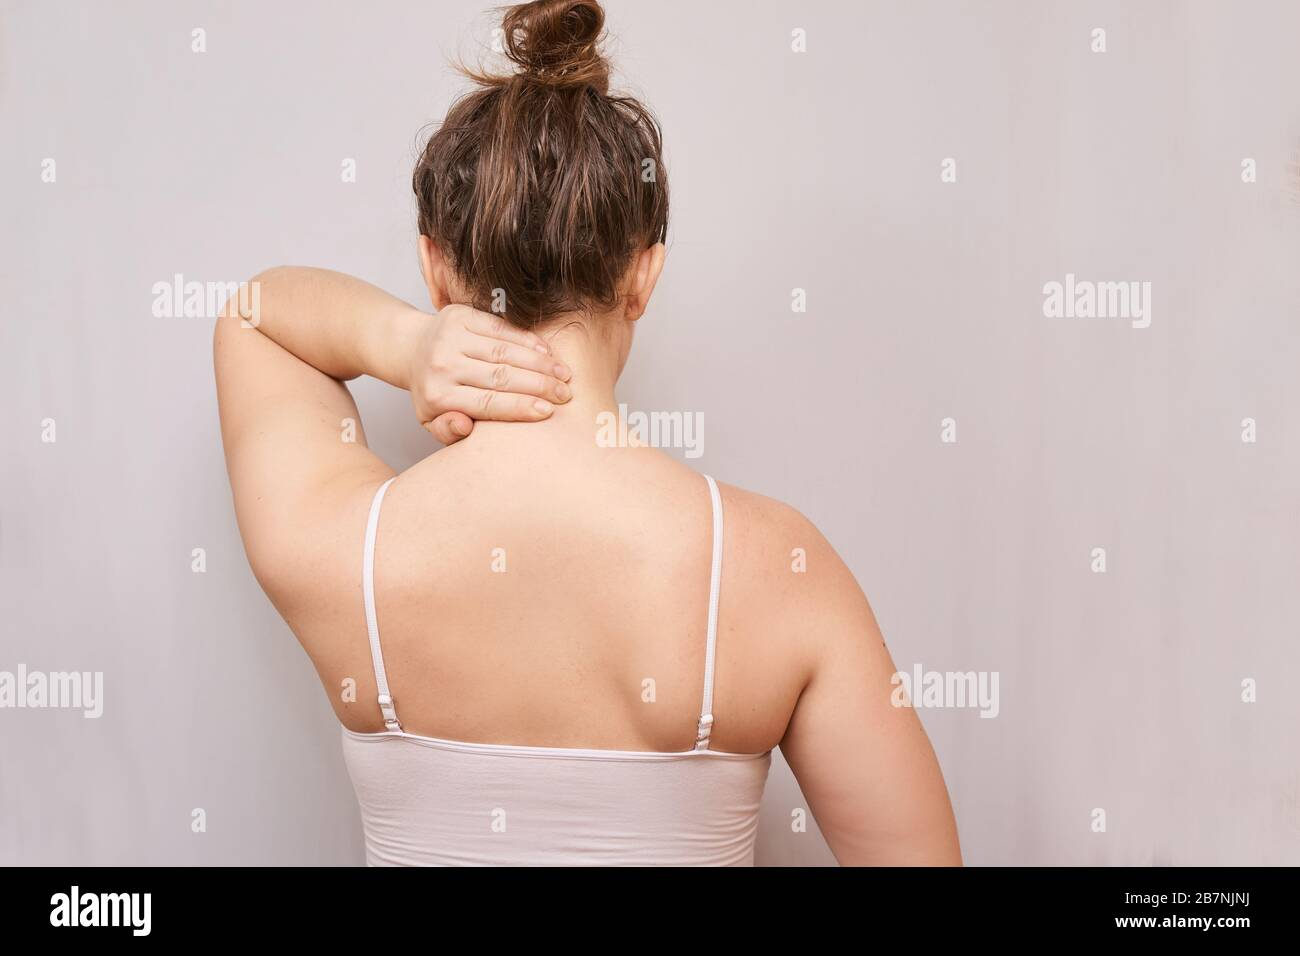 Page 2 Neck Brace Man High Resolution Stock Photography And Images Alamy